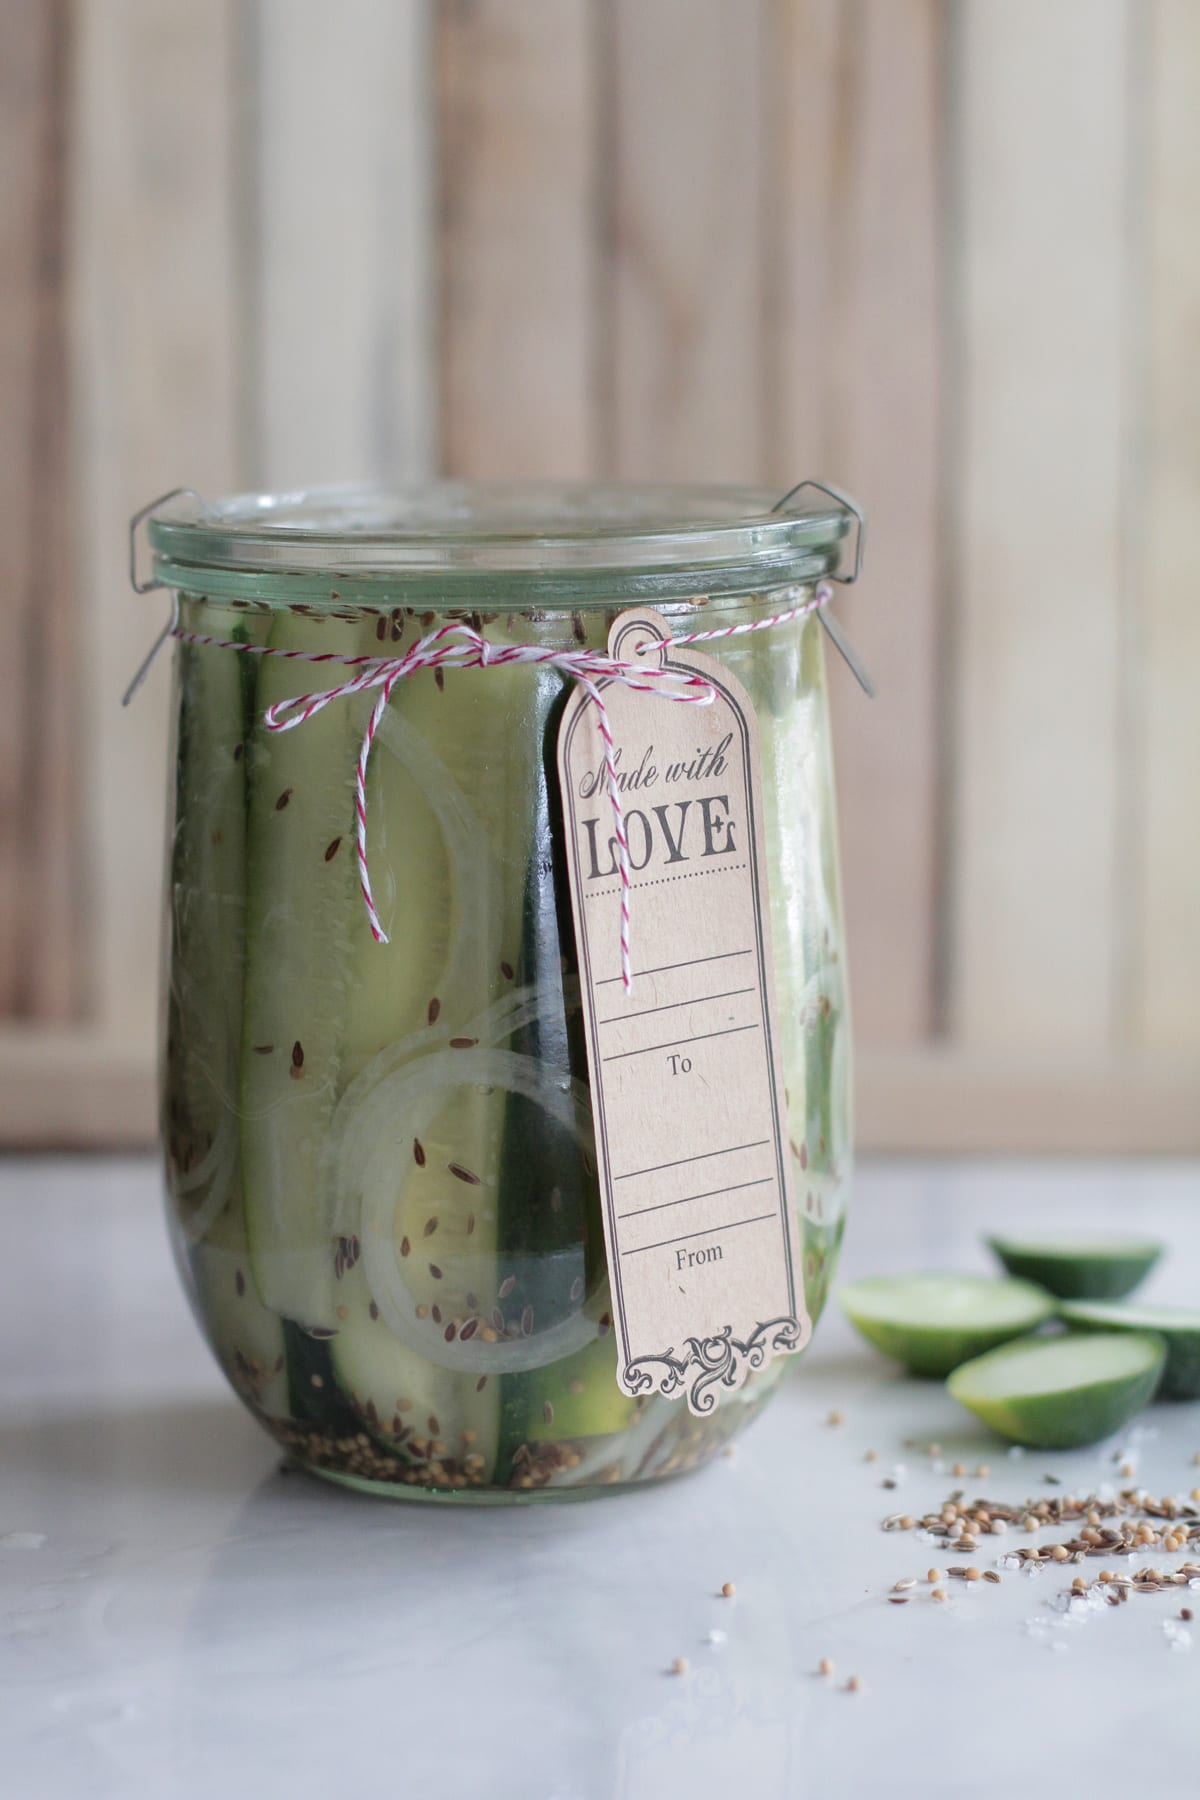 Let's just get to those amazing homemade refrigerator pickles ...